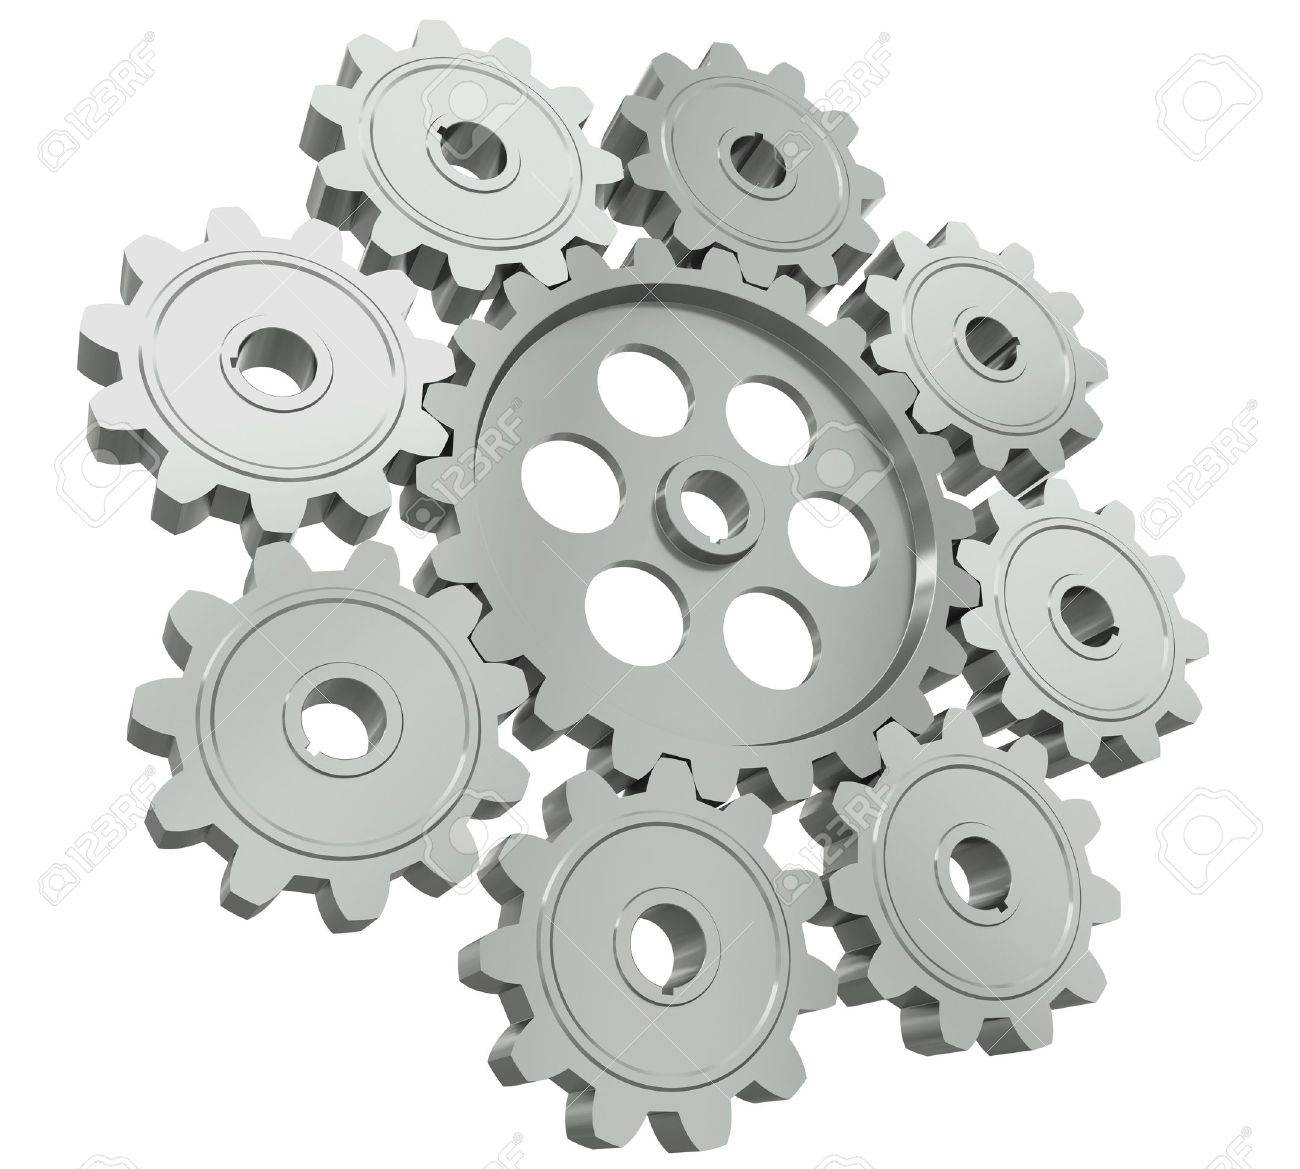 The group of metal gears - a symbol of teamwork Stock Photo - 10355260